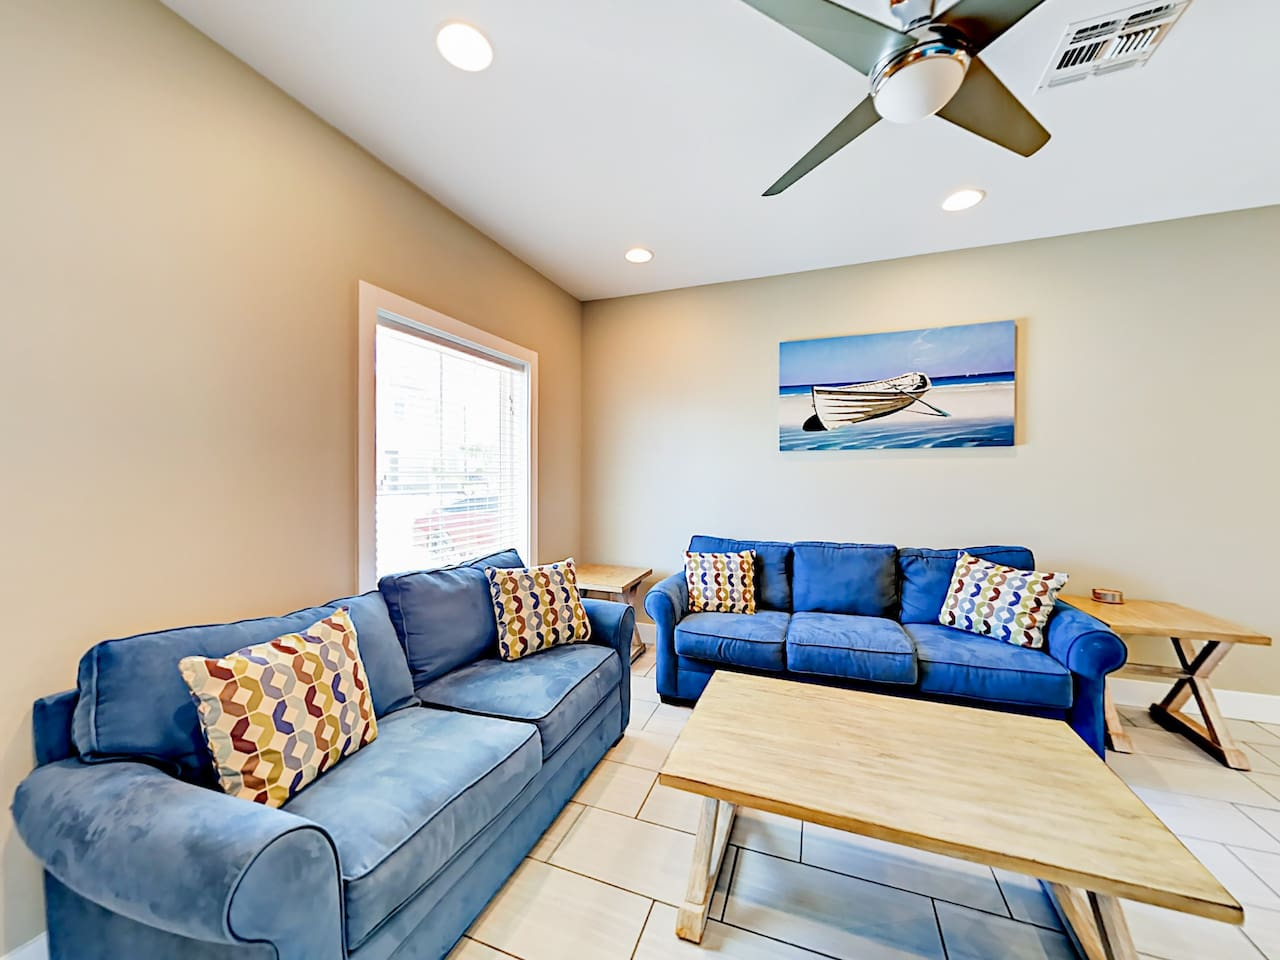 Welcome to Padre Island! The living room offers plush seating on a sofa and a love seat.